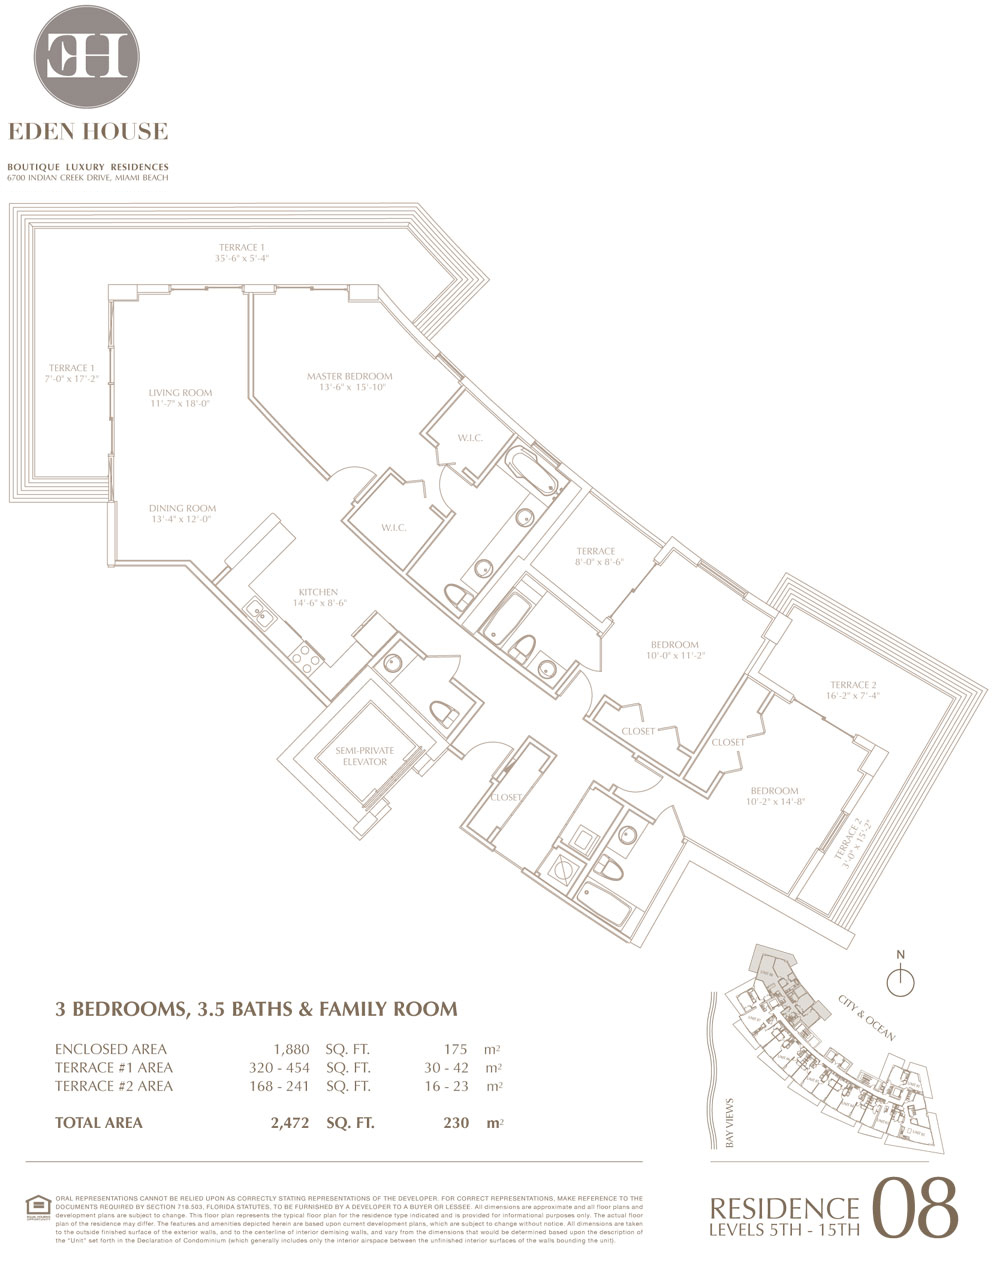 Eden house miami beach condos sale rent floor plans for Miami mansion floor plans